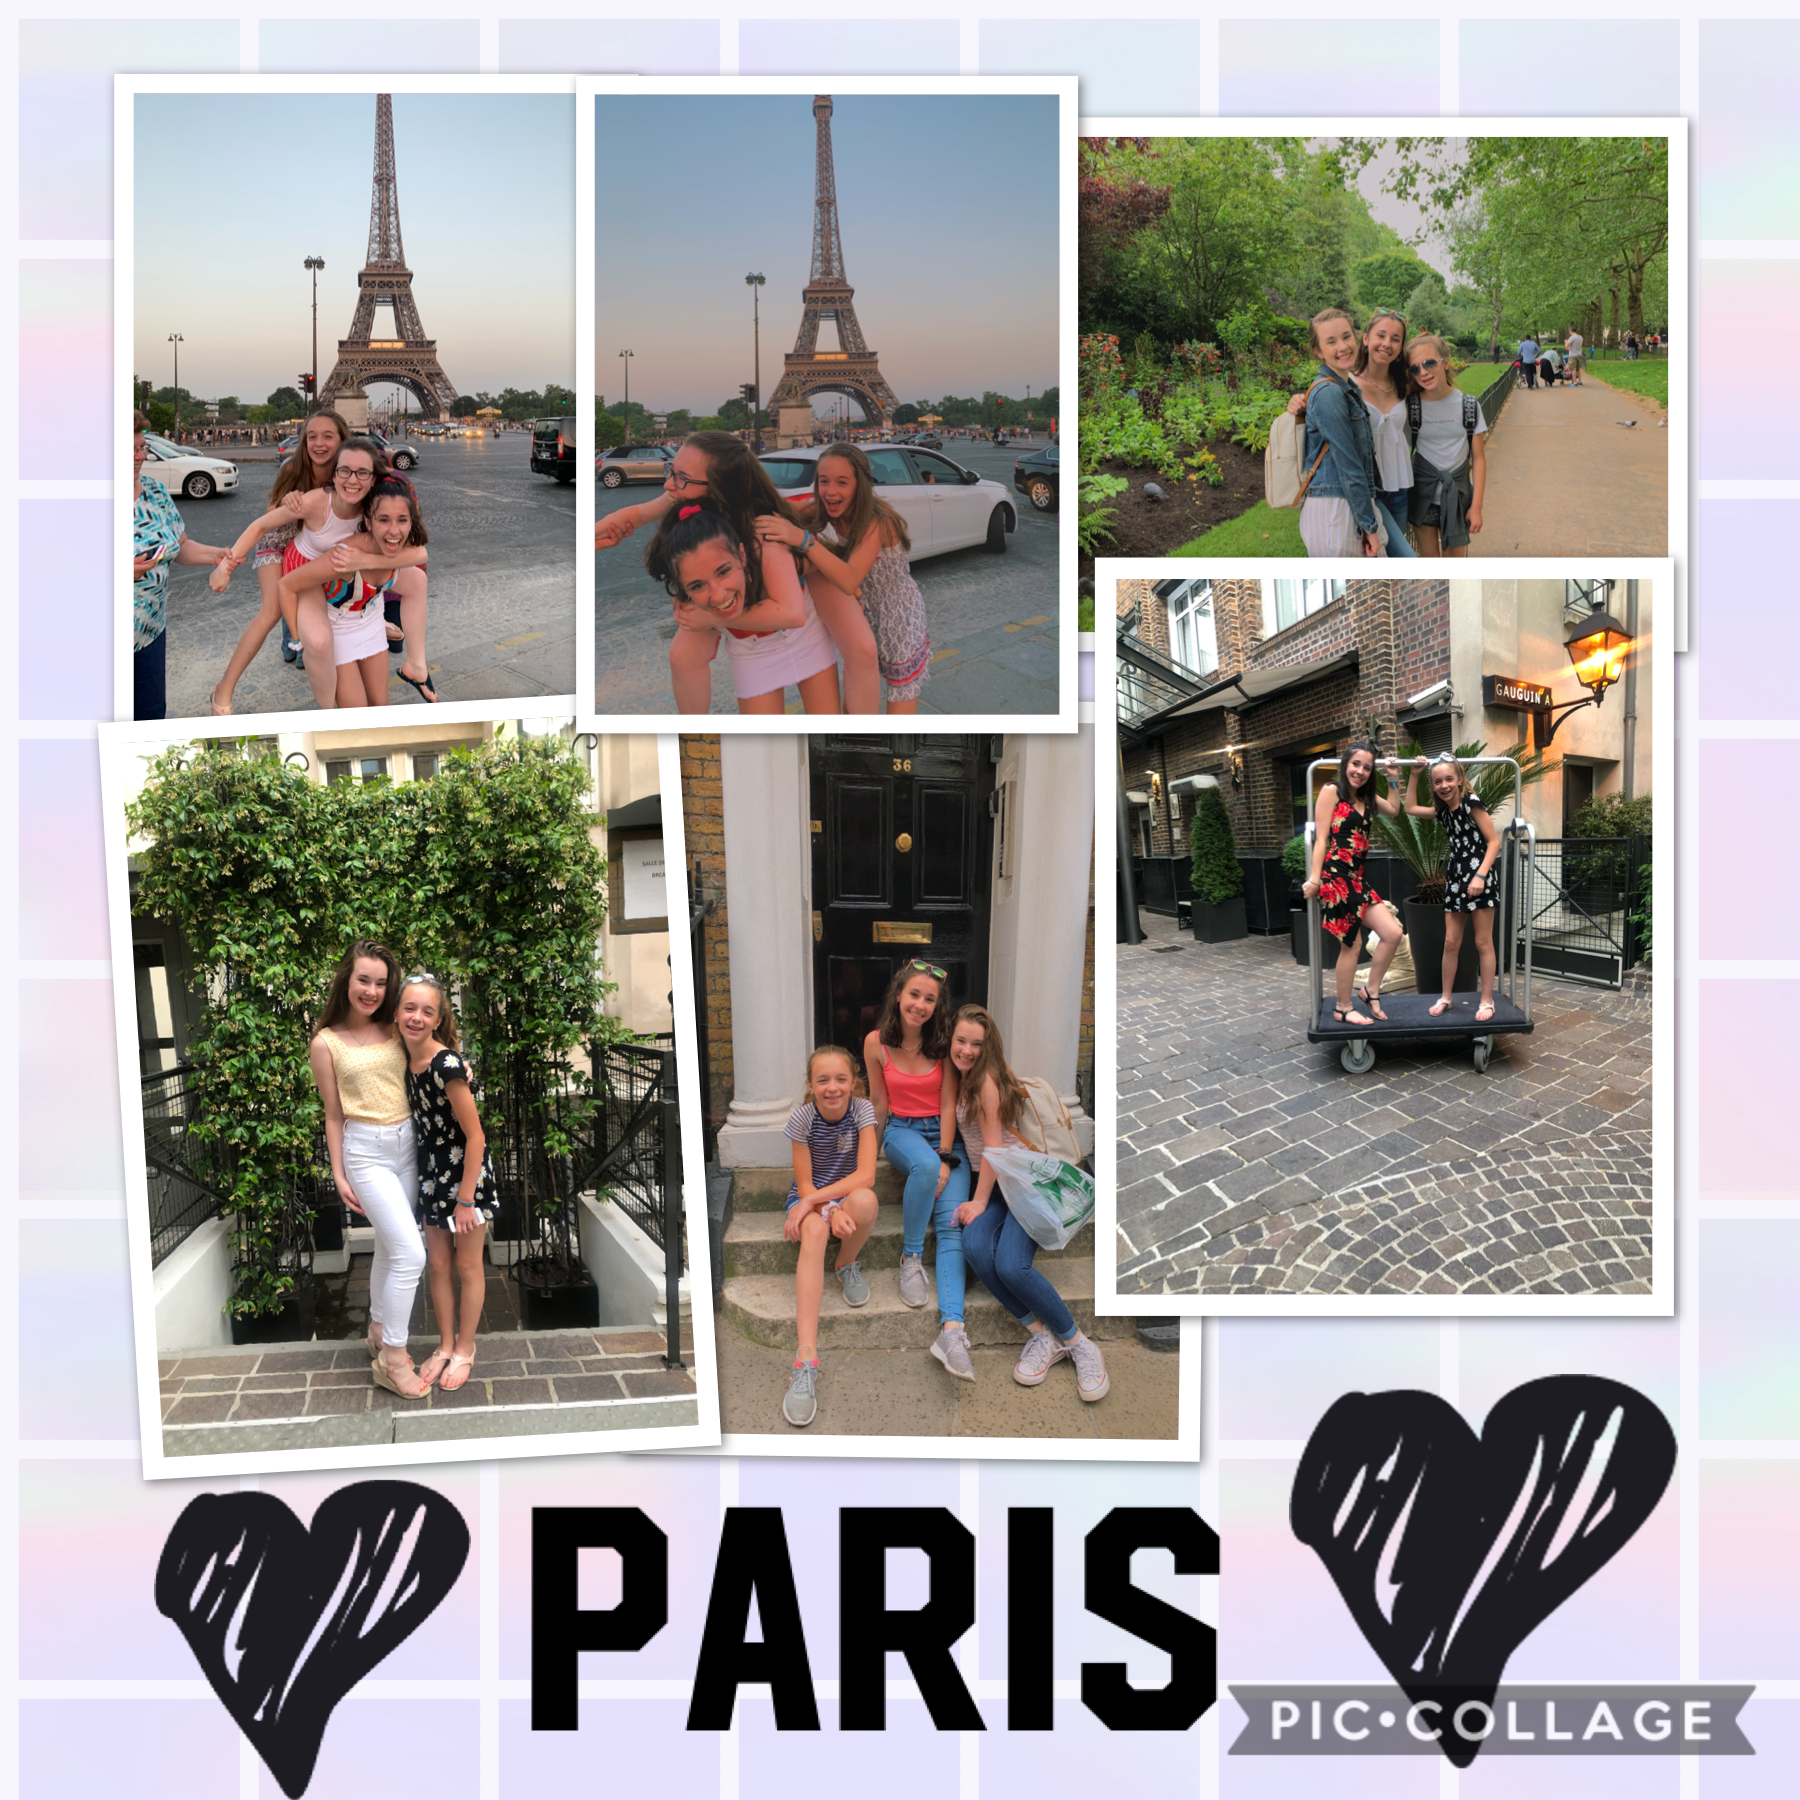 Paris summer 2019